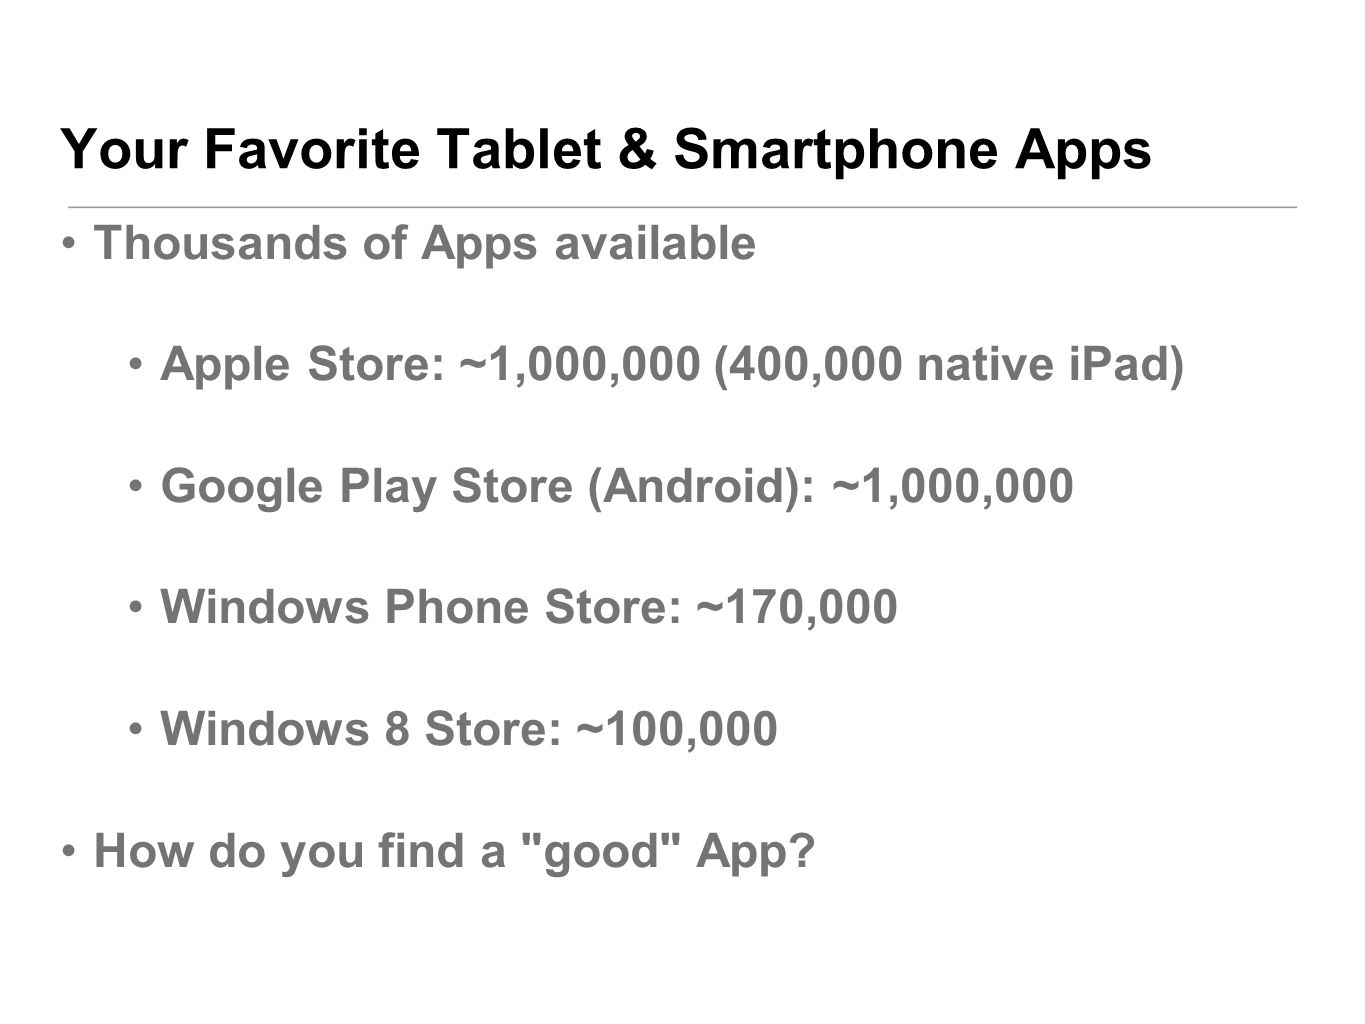 Your Favorite Tablet & Smartphone Apps Thousands of Apps available Apple Store: ~1,000,000 (400,000 native iPad) Google Play Store (Android): ~1,000,000 Windows Phone Store: ~170,000 Windows 8 Store: ~100,000 How do you find a good App